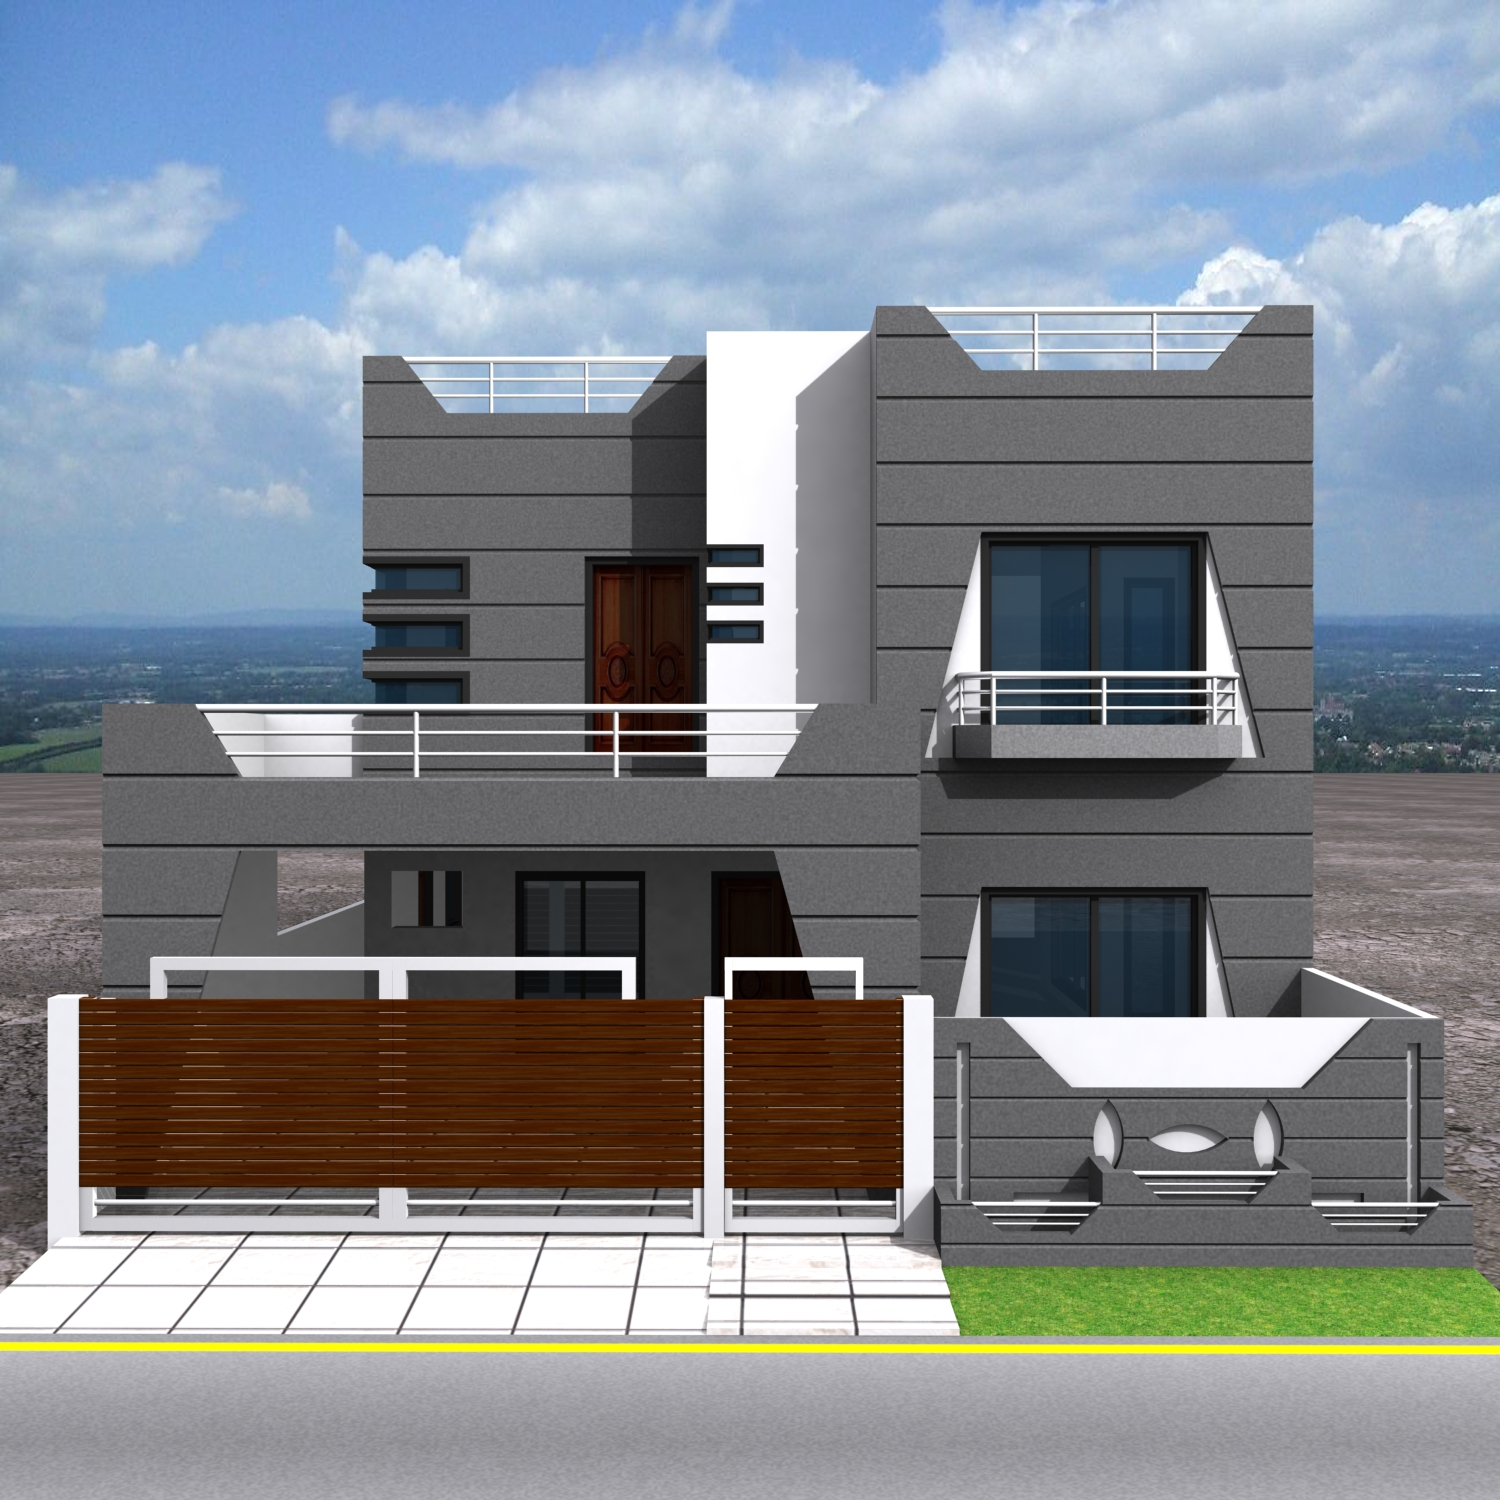 Home Design Gate Ideas: 3D Front Elevation.com: Traditional + Modern House Plans